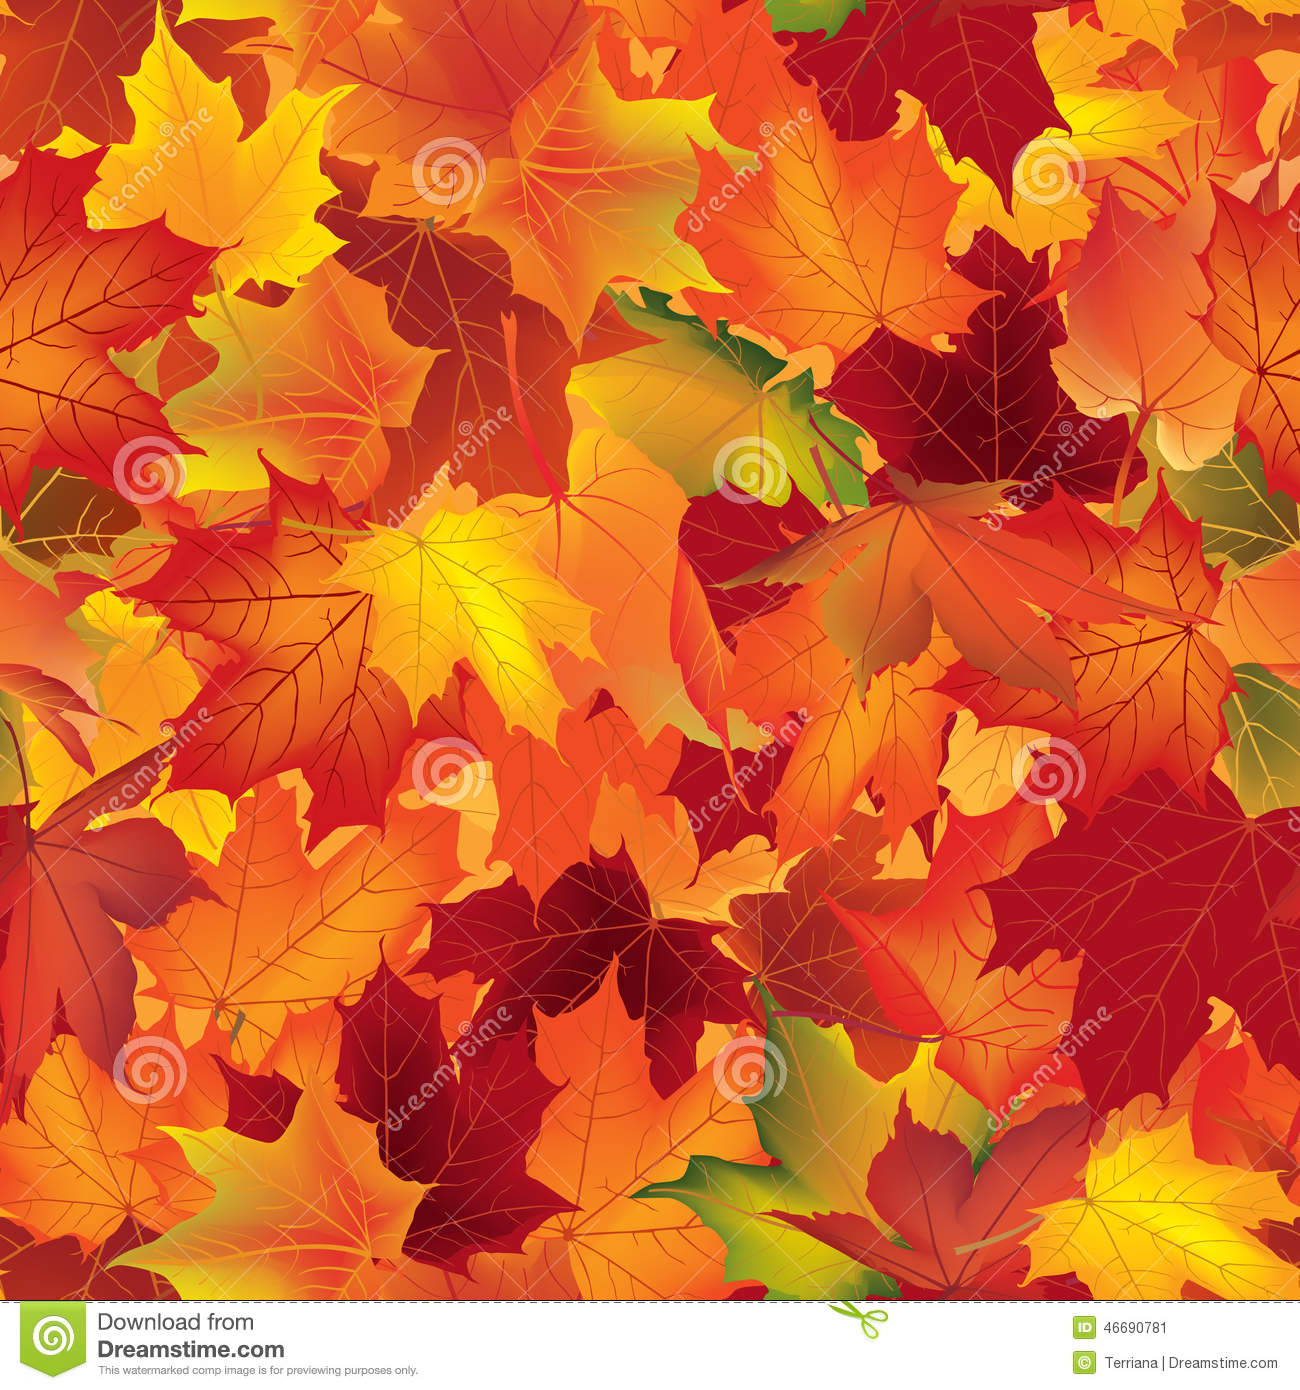 Fall Season Quotes Wallpapers Autumn Texture Fall Pattern Wallpaper With Maple Leaves